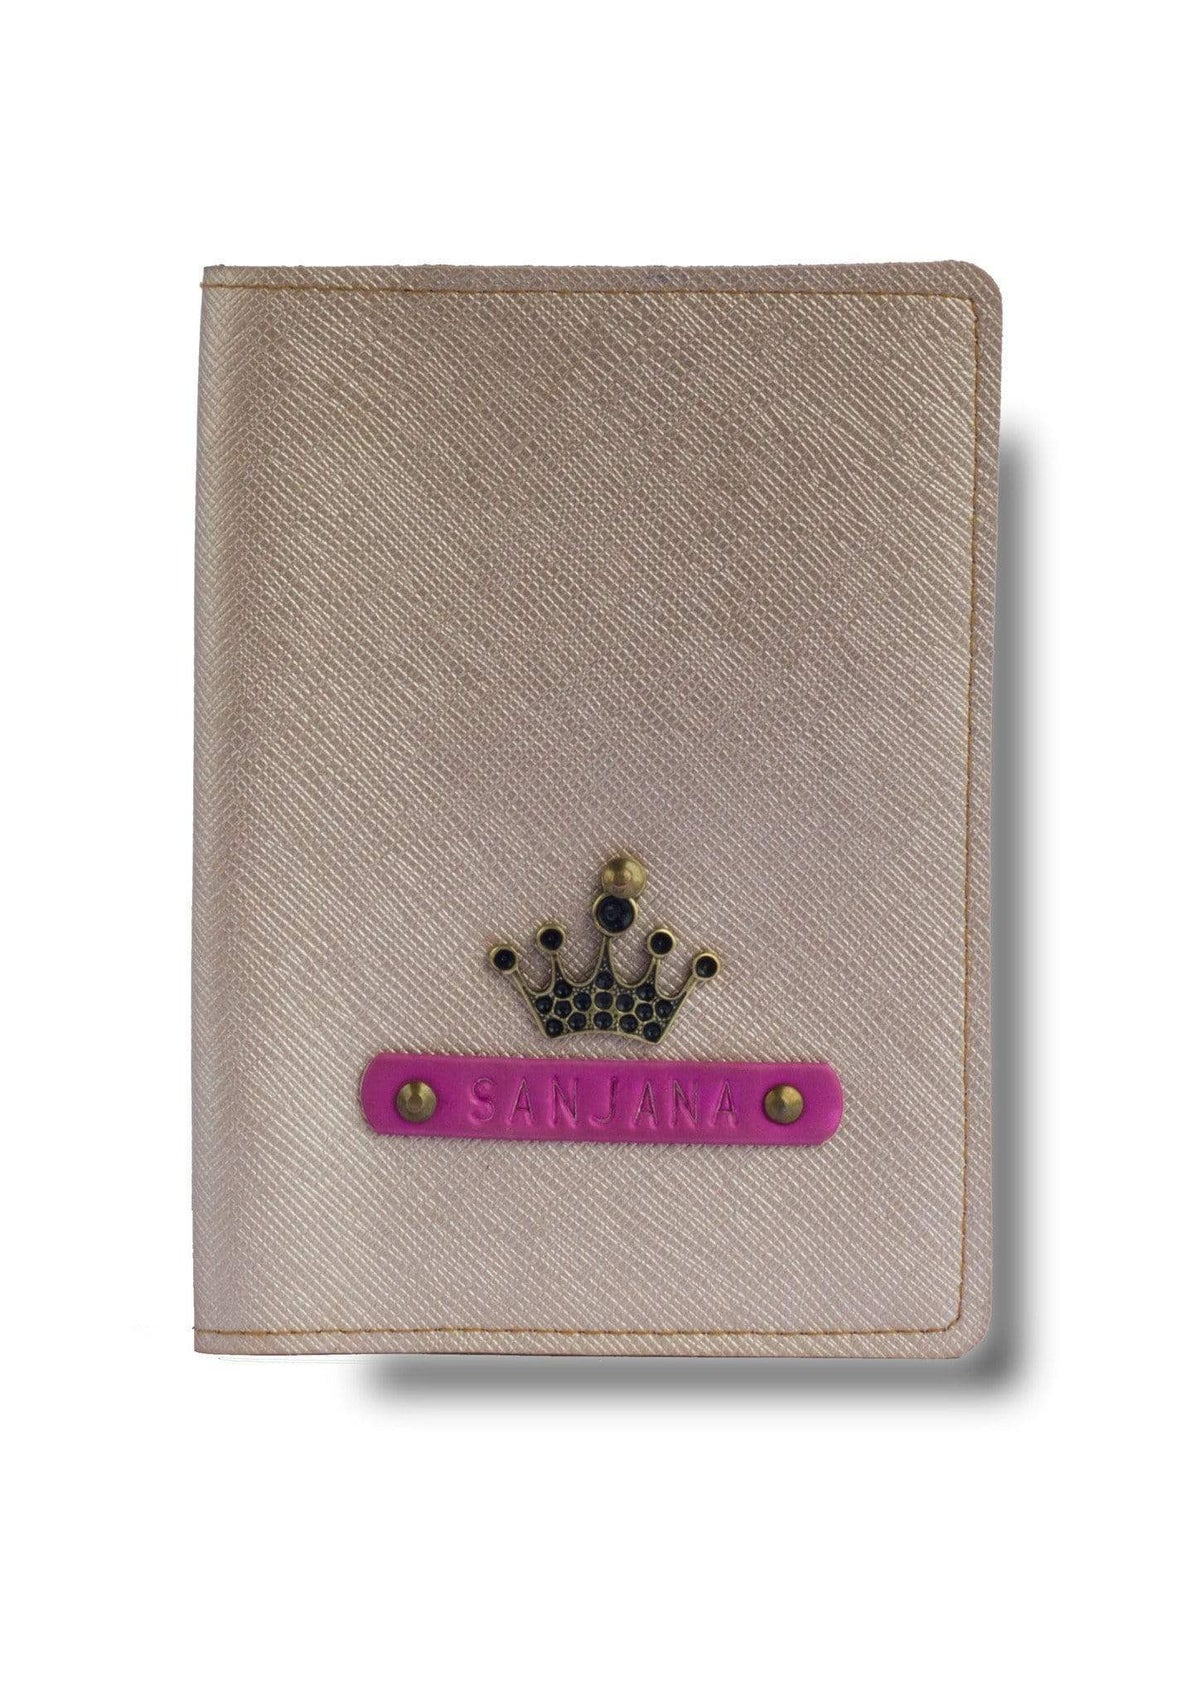 Personalized Passport Cover - Rose Gold Passport Cover